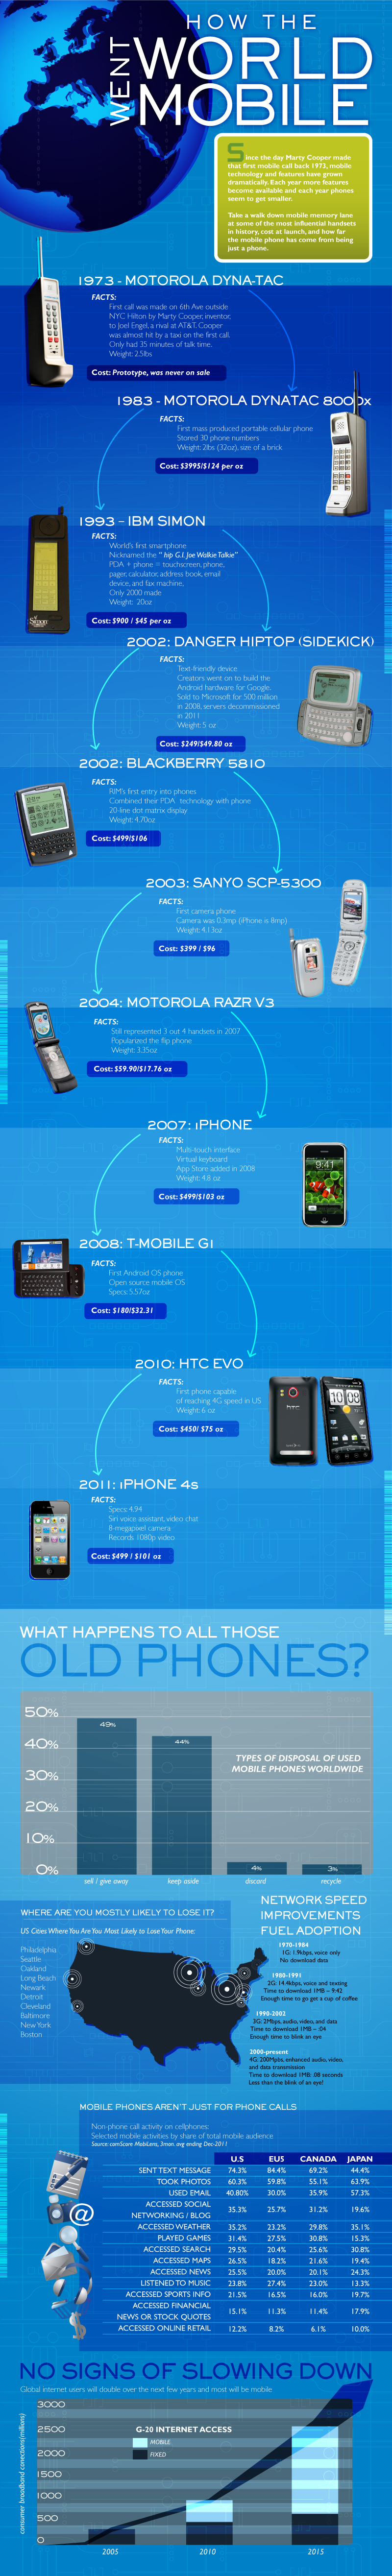 Rackspace® — The History of Mobile Phones – How the World Went Mobile [Infographic]